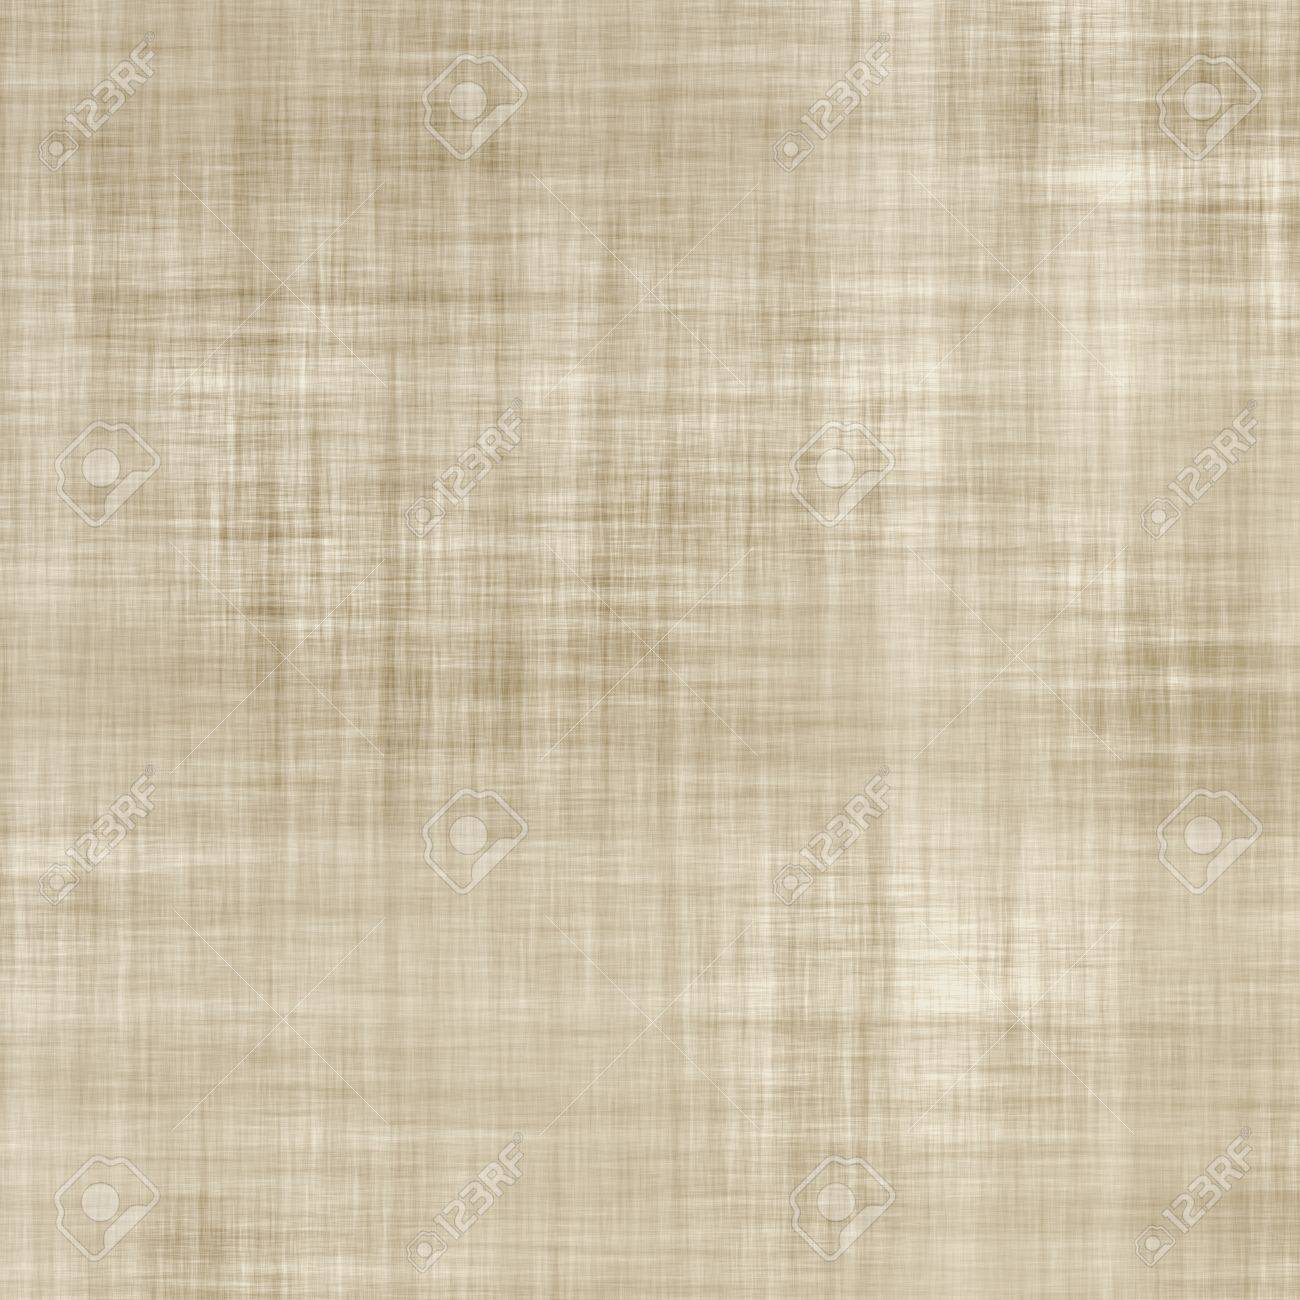 seamless texture canvas fabric as background a high resolution stock photo